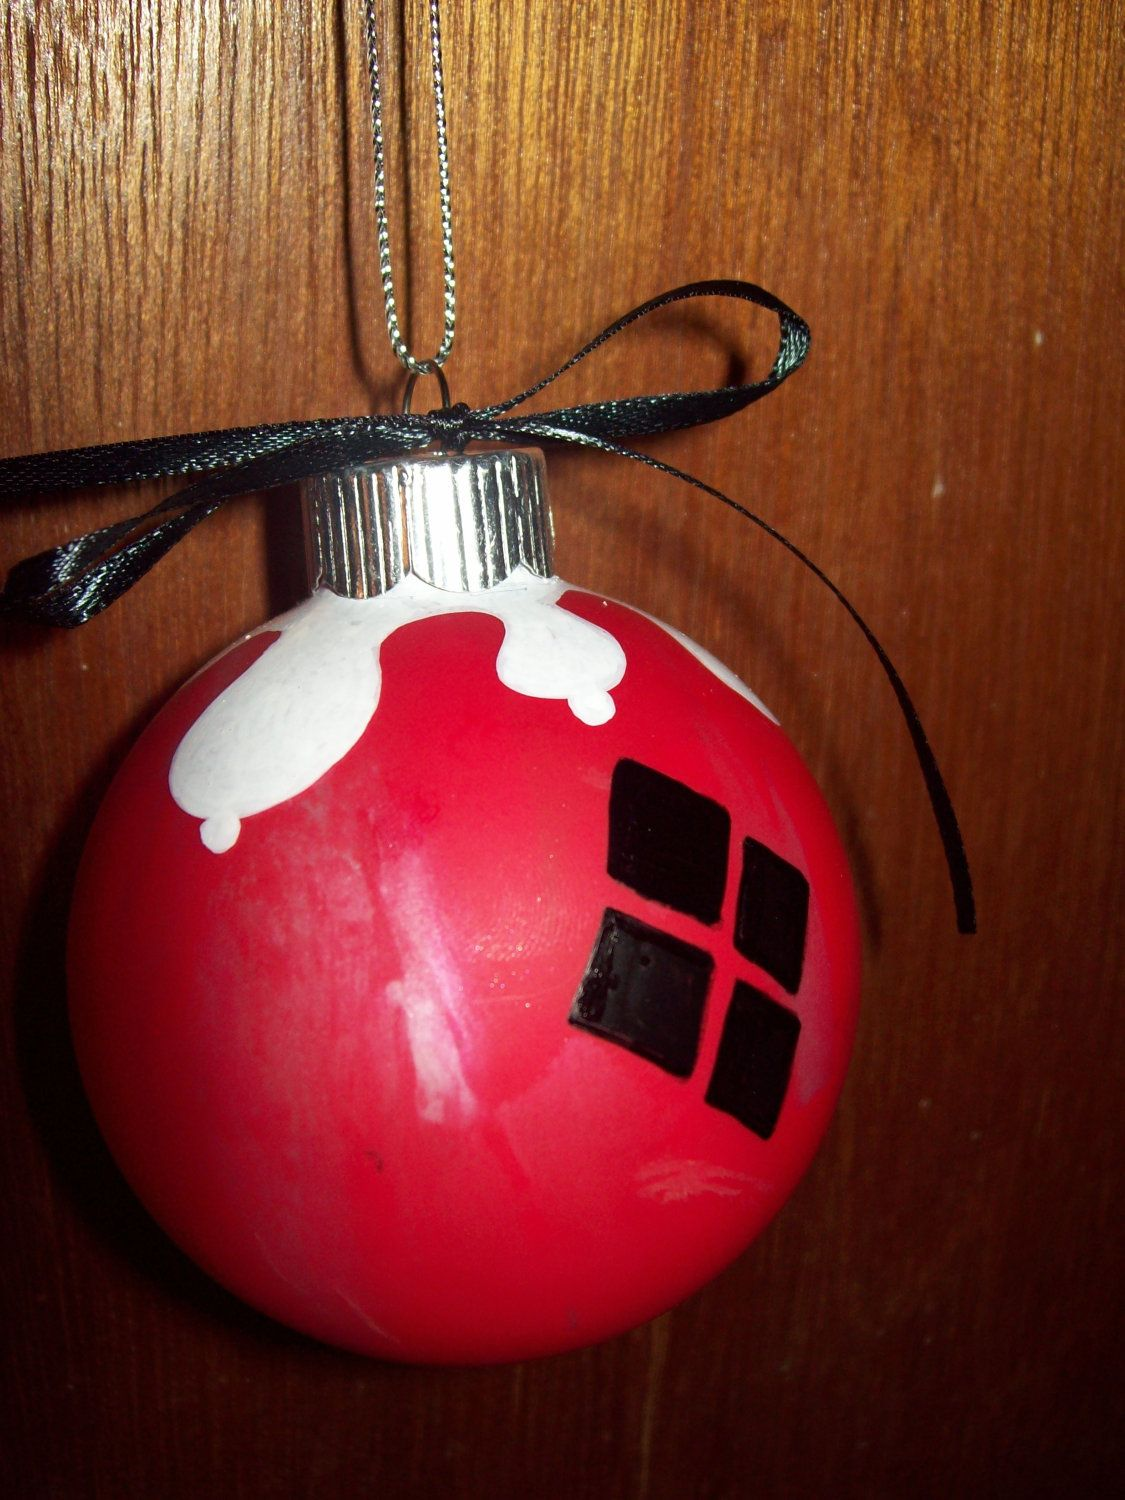 Hey puddinu a harley quinninspired ornament harley quinn